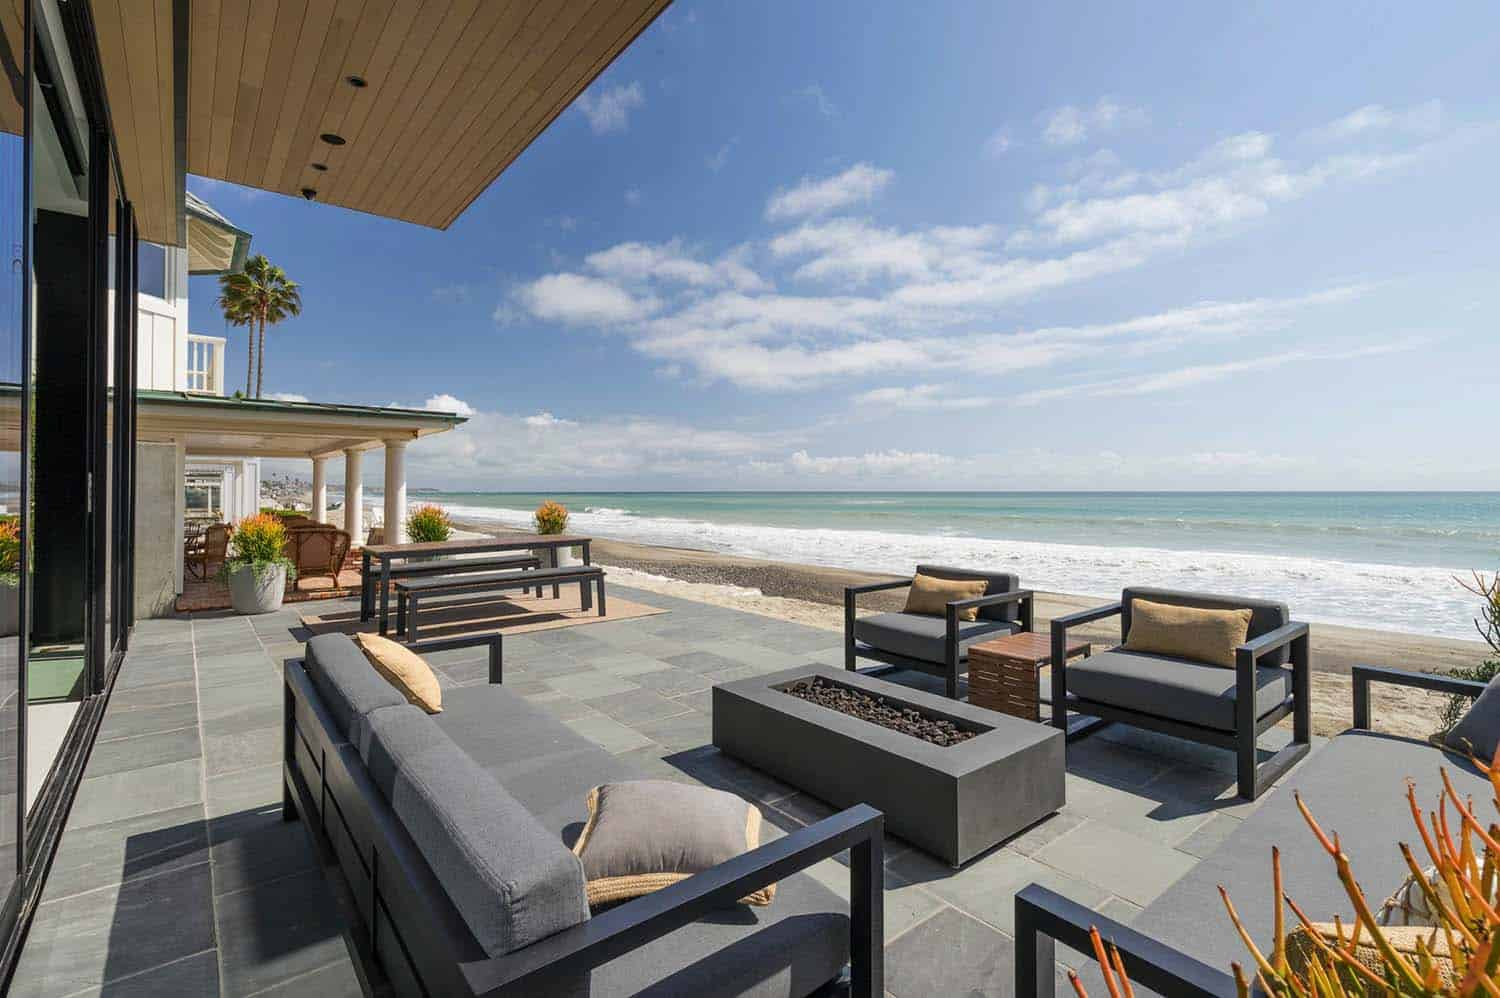 Sleek and stylish beach shelter in a california seaside for Beach house design jeffrey strnad